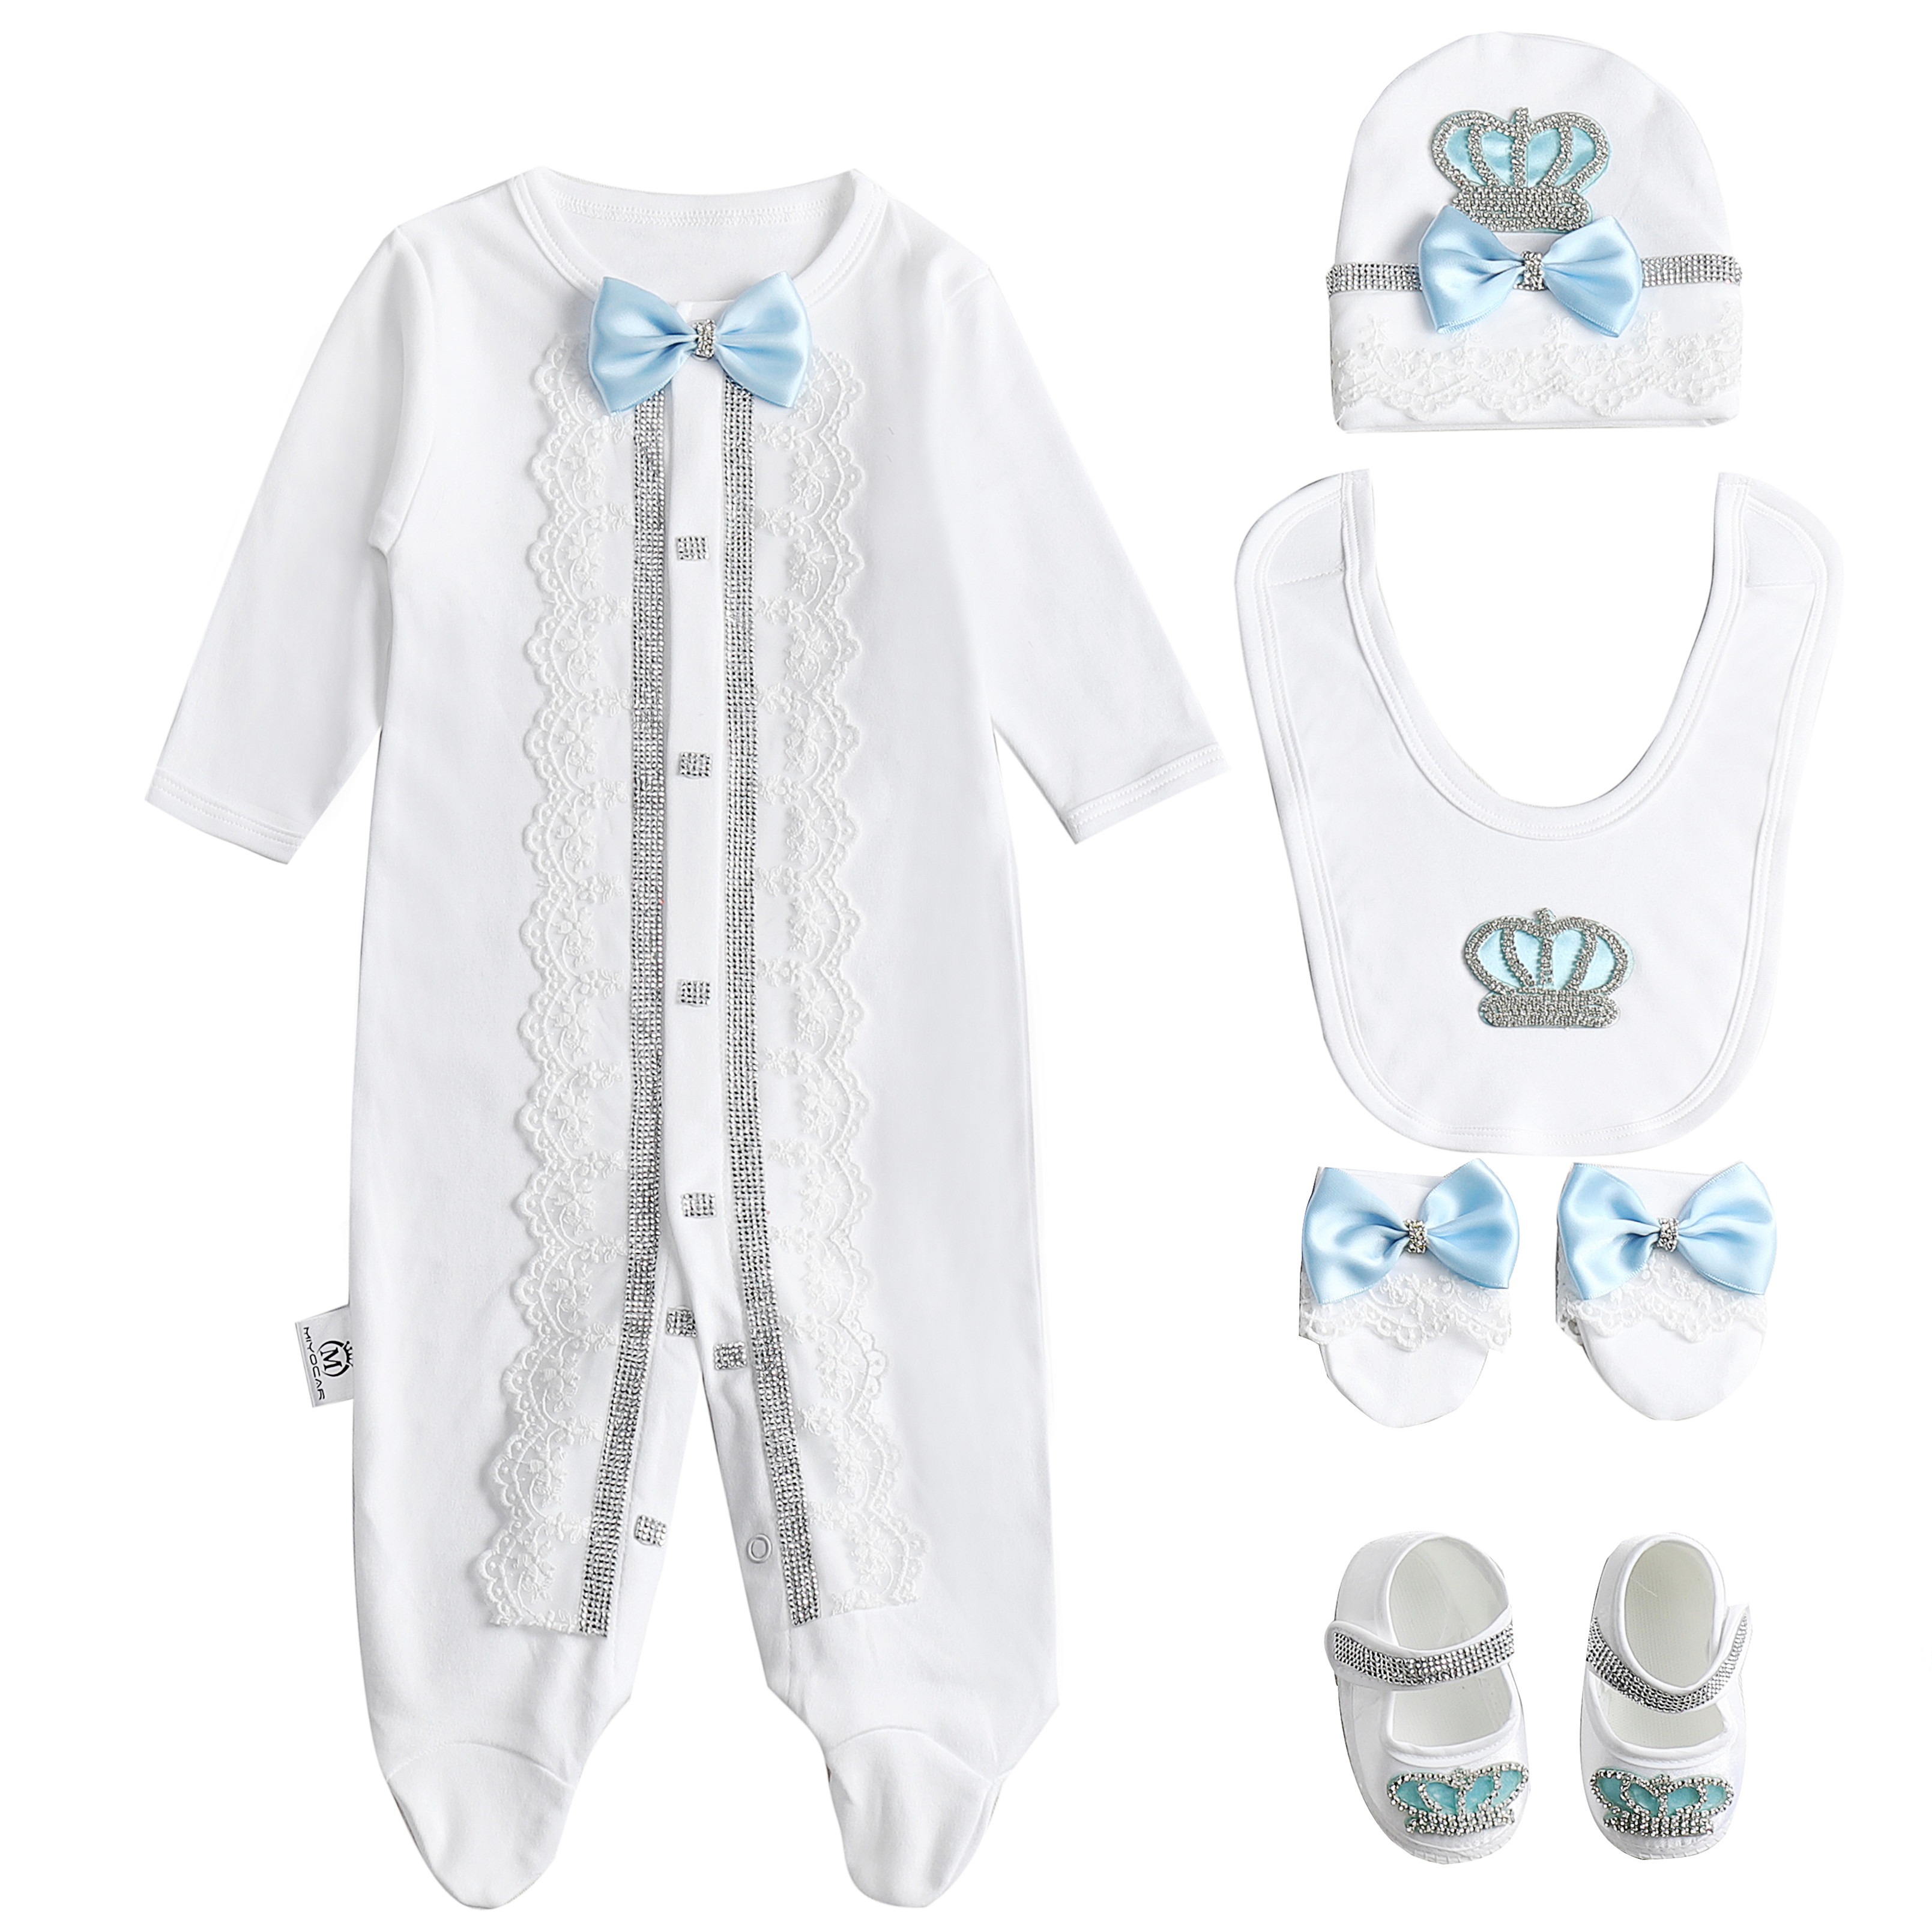 MIYOCAR 0-6m All Cotton Crown Lace Rhinestone Clothes Set One Piece Bodysuit Set Unique Baby Shower Gift Bling Baby Cothes SL